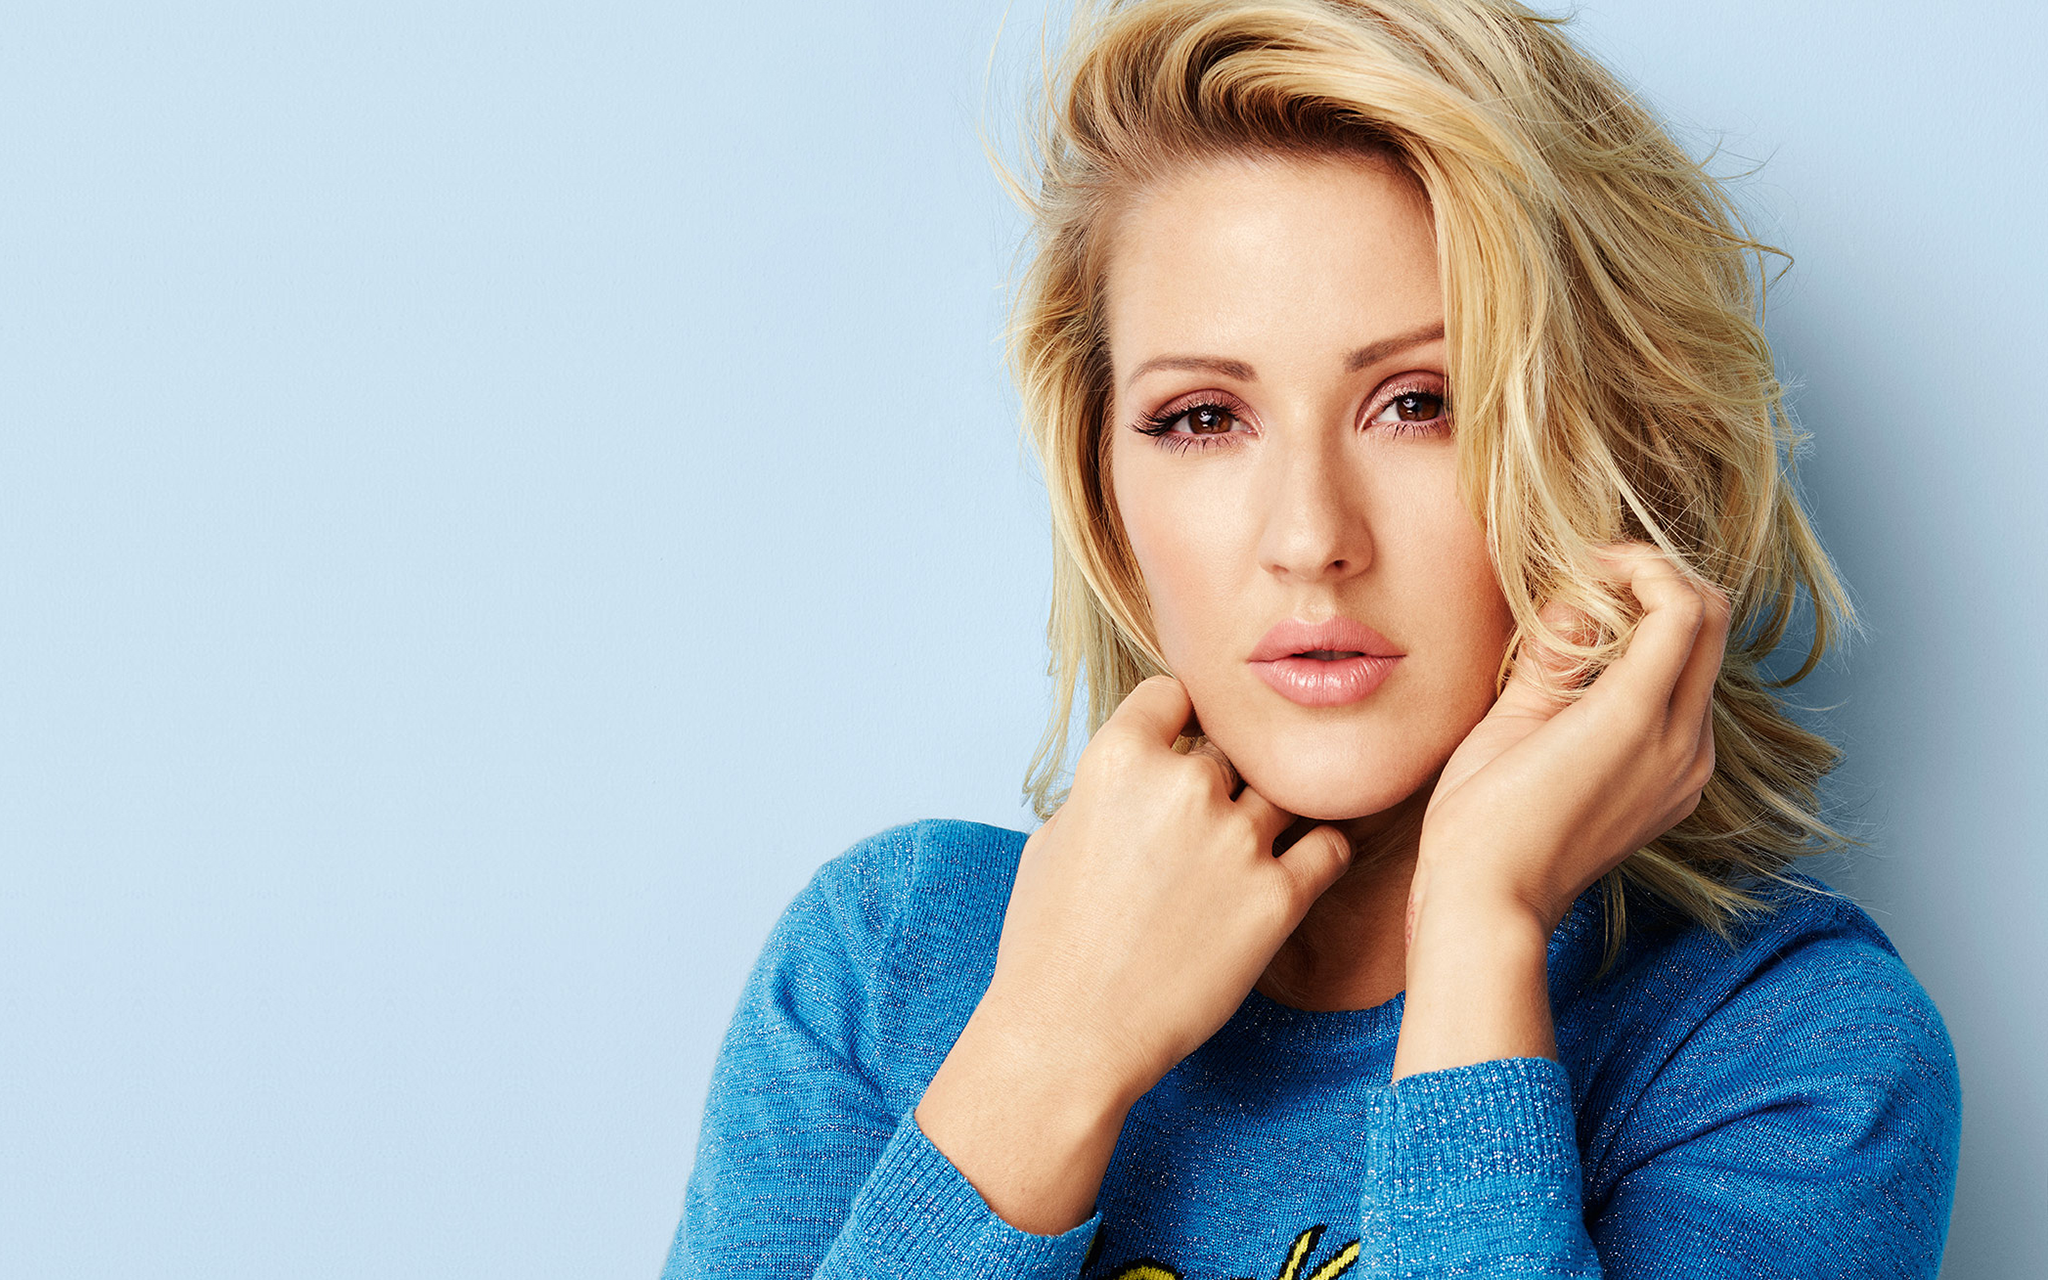 Ellie Goulding Wallpapers Images Photos Pictures Backgrounds